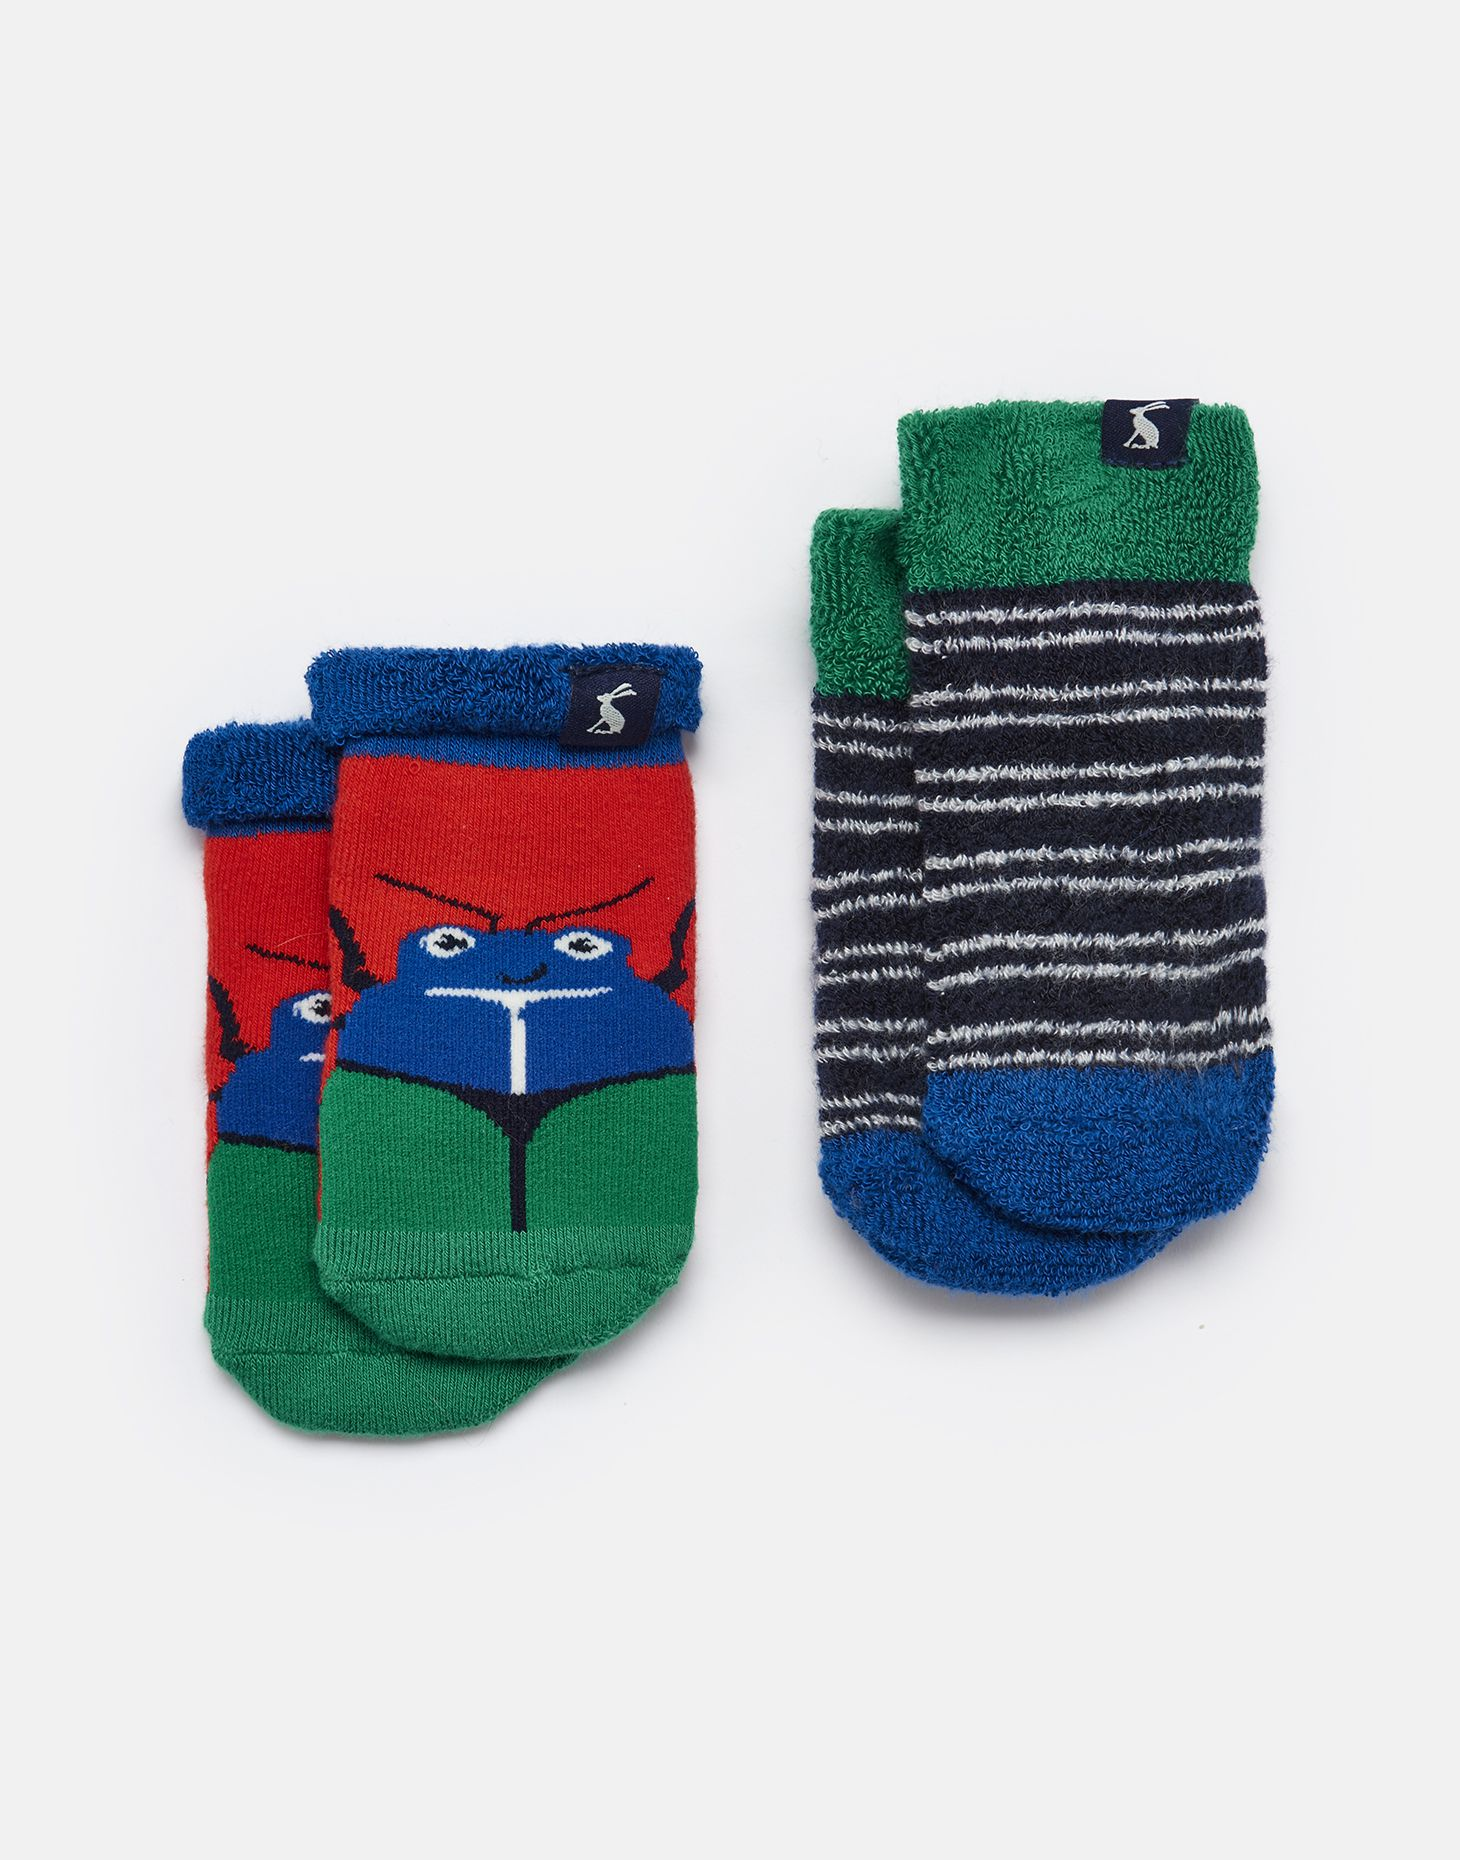 50f2d76aeedbf Two pack terry RED BUG MULTI Towelling Socks | Joules UK